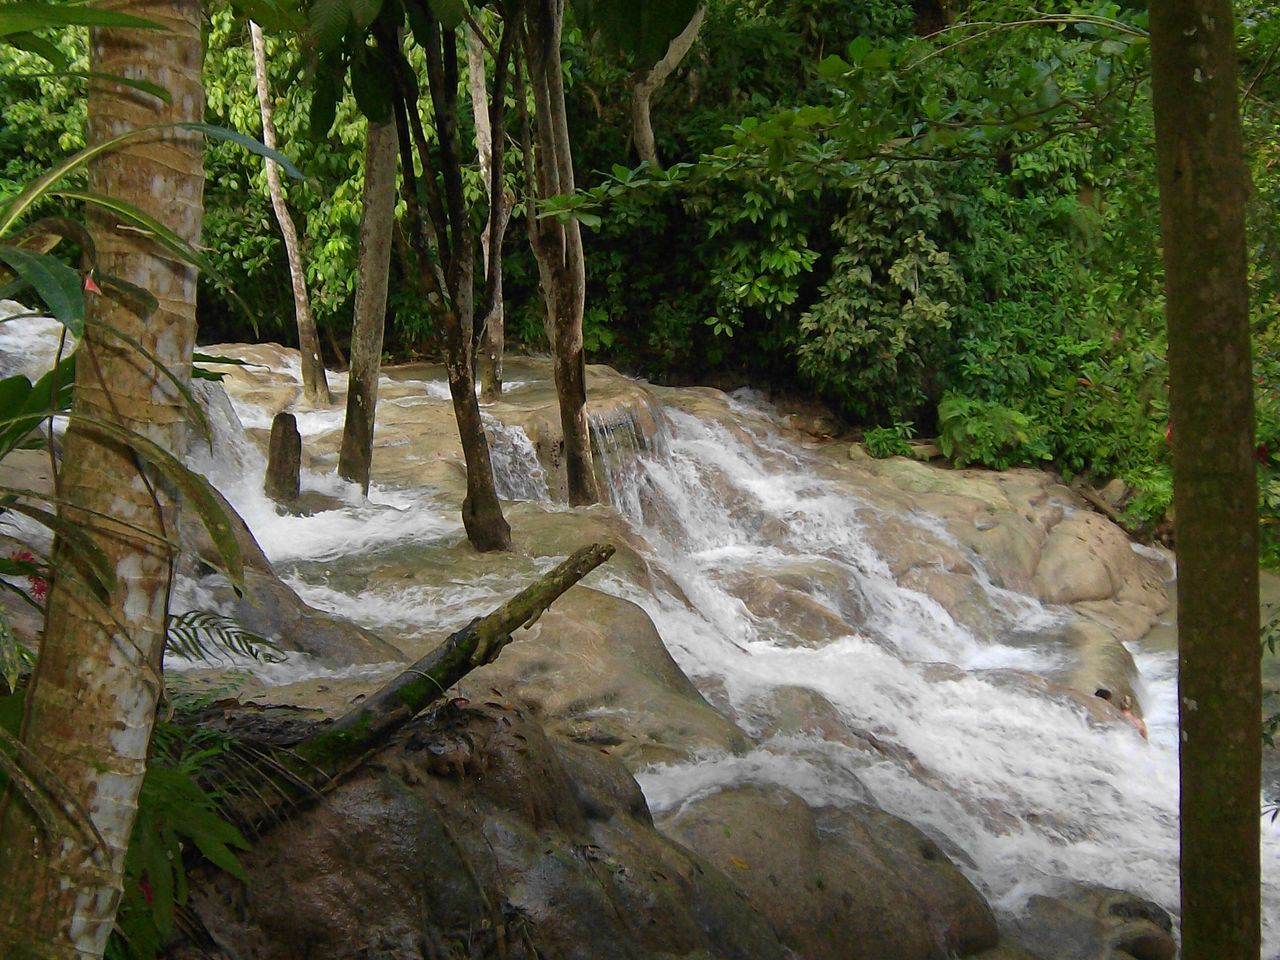 Beauty In Nature Dunns Falls Dunns River Falls Jamaica Nature No People Plant Rock - Object Scenics Tree Water Waterfall